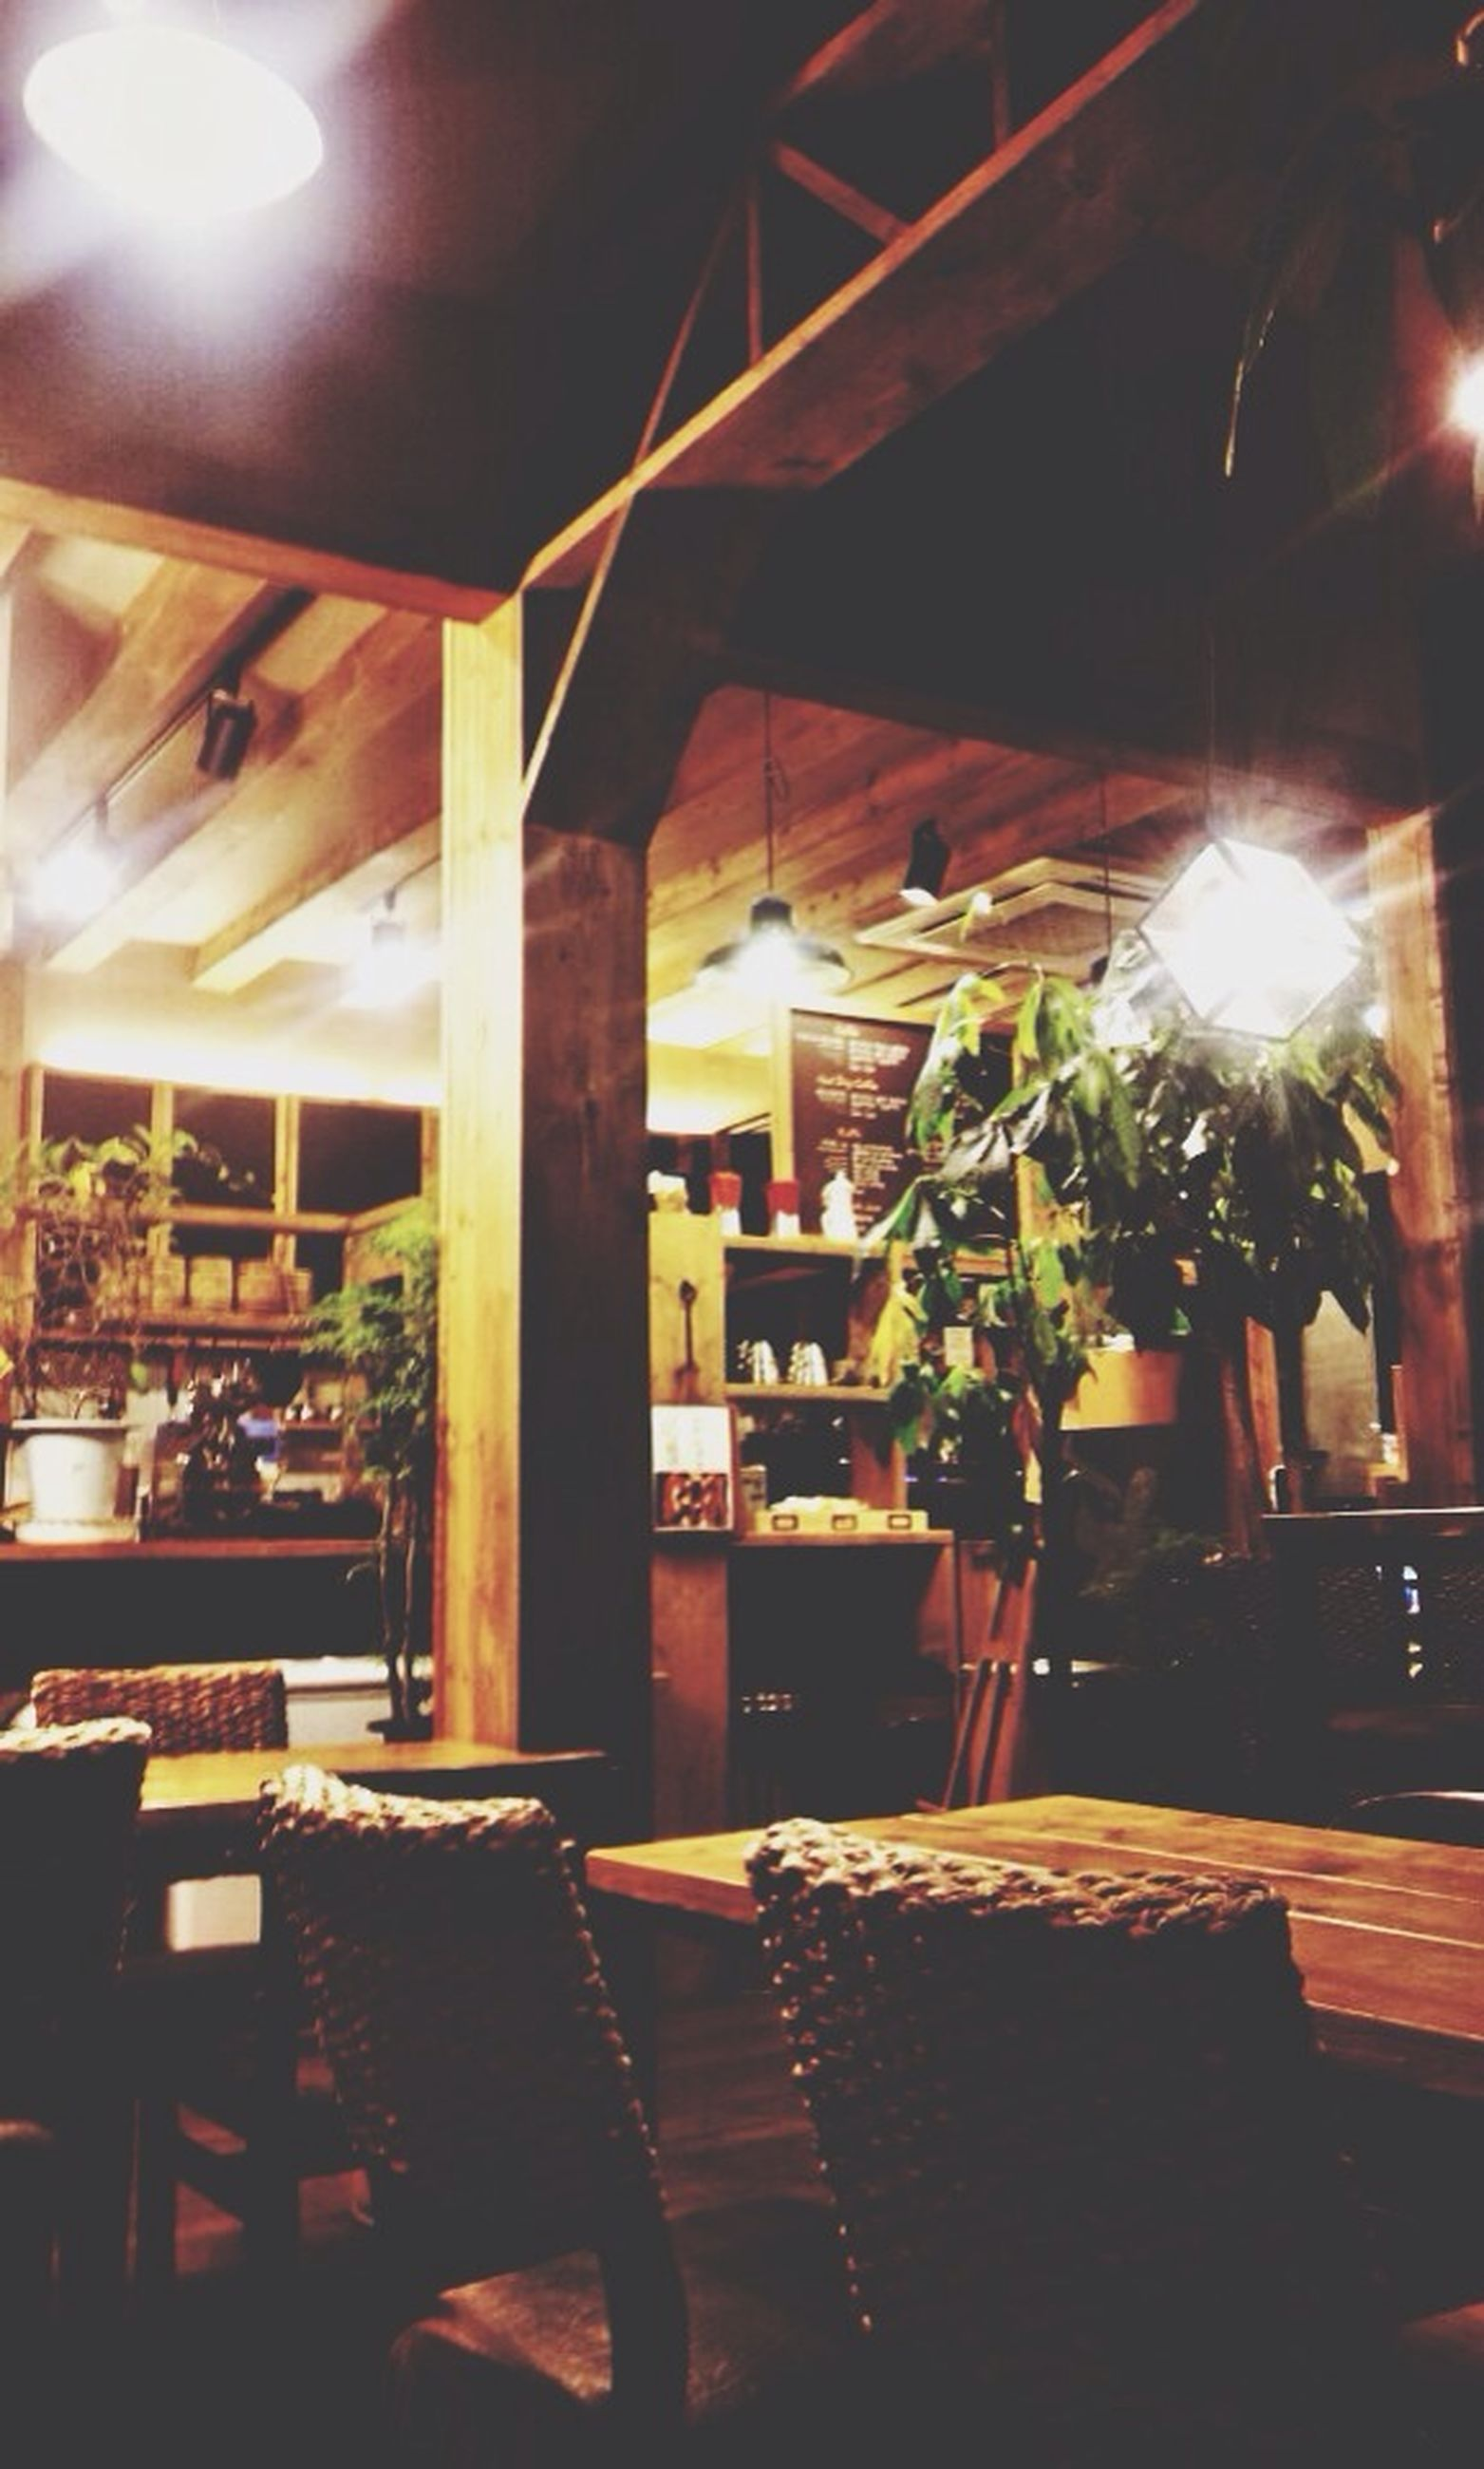 indoors, illuminated, table, chair, built structure, architecture, night, restaurant, lighting equipment, absence, potted plant, sunlight, window, home interior, building exterior, empty, house, incidental people, no people, electric lamp